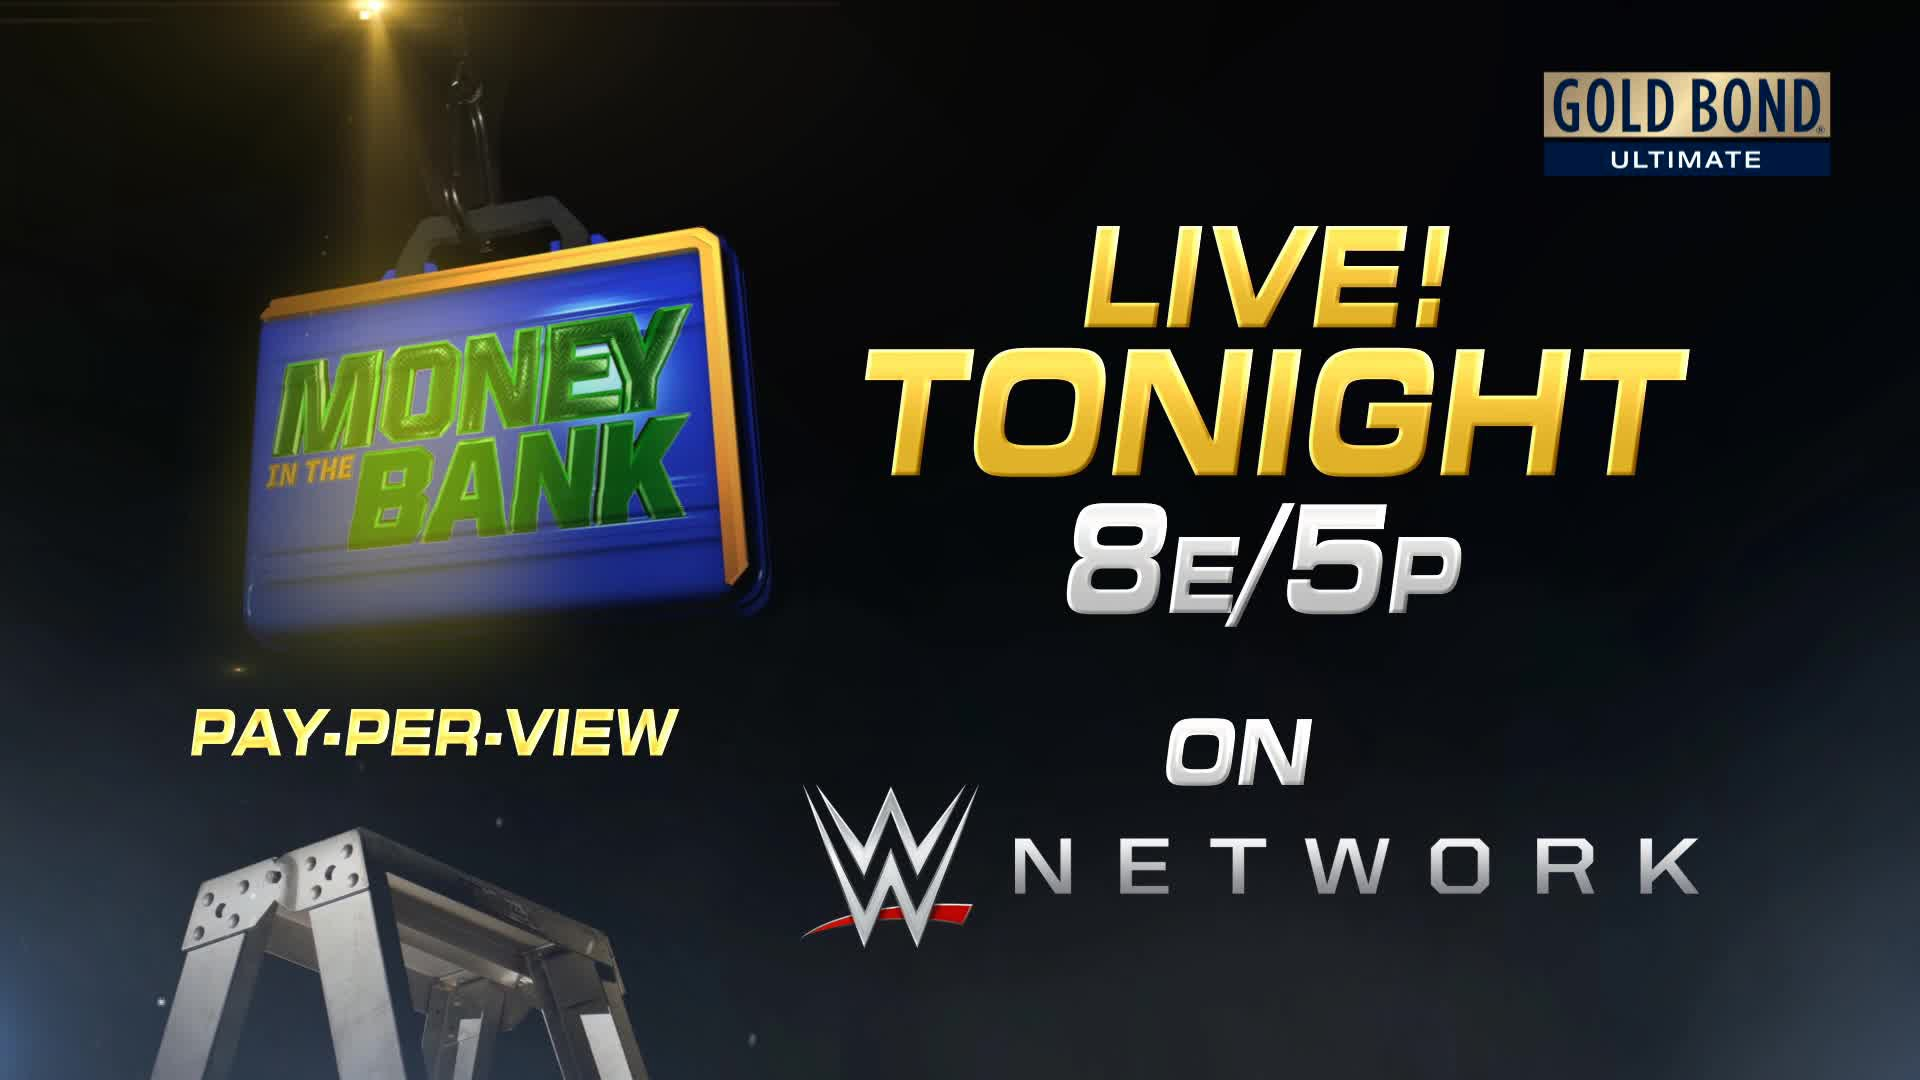 Opportunity is calling with the Money in the Bank Ladder Match 1920x1080